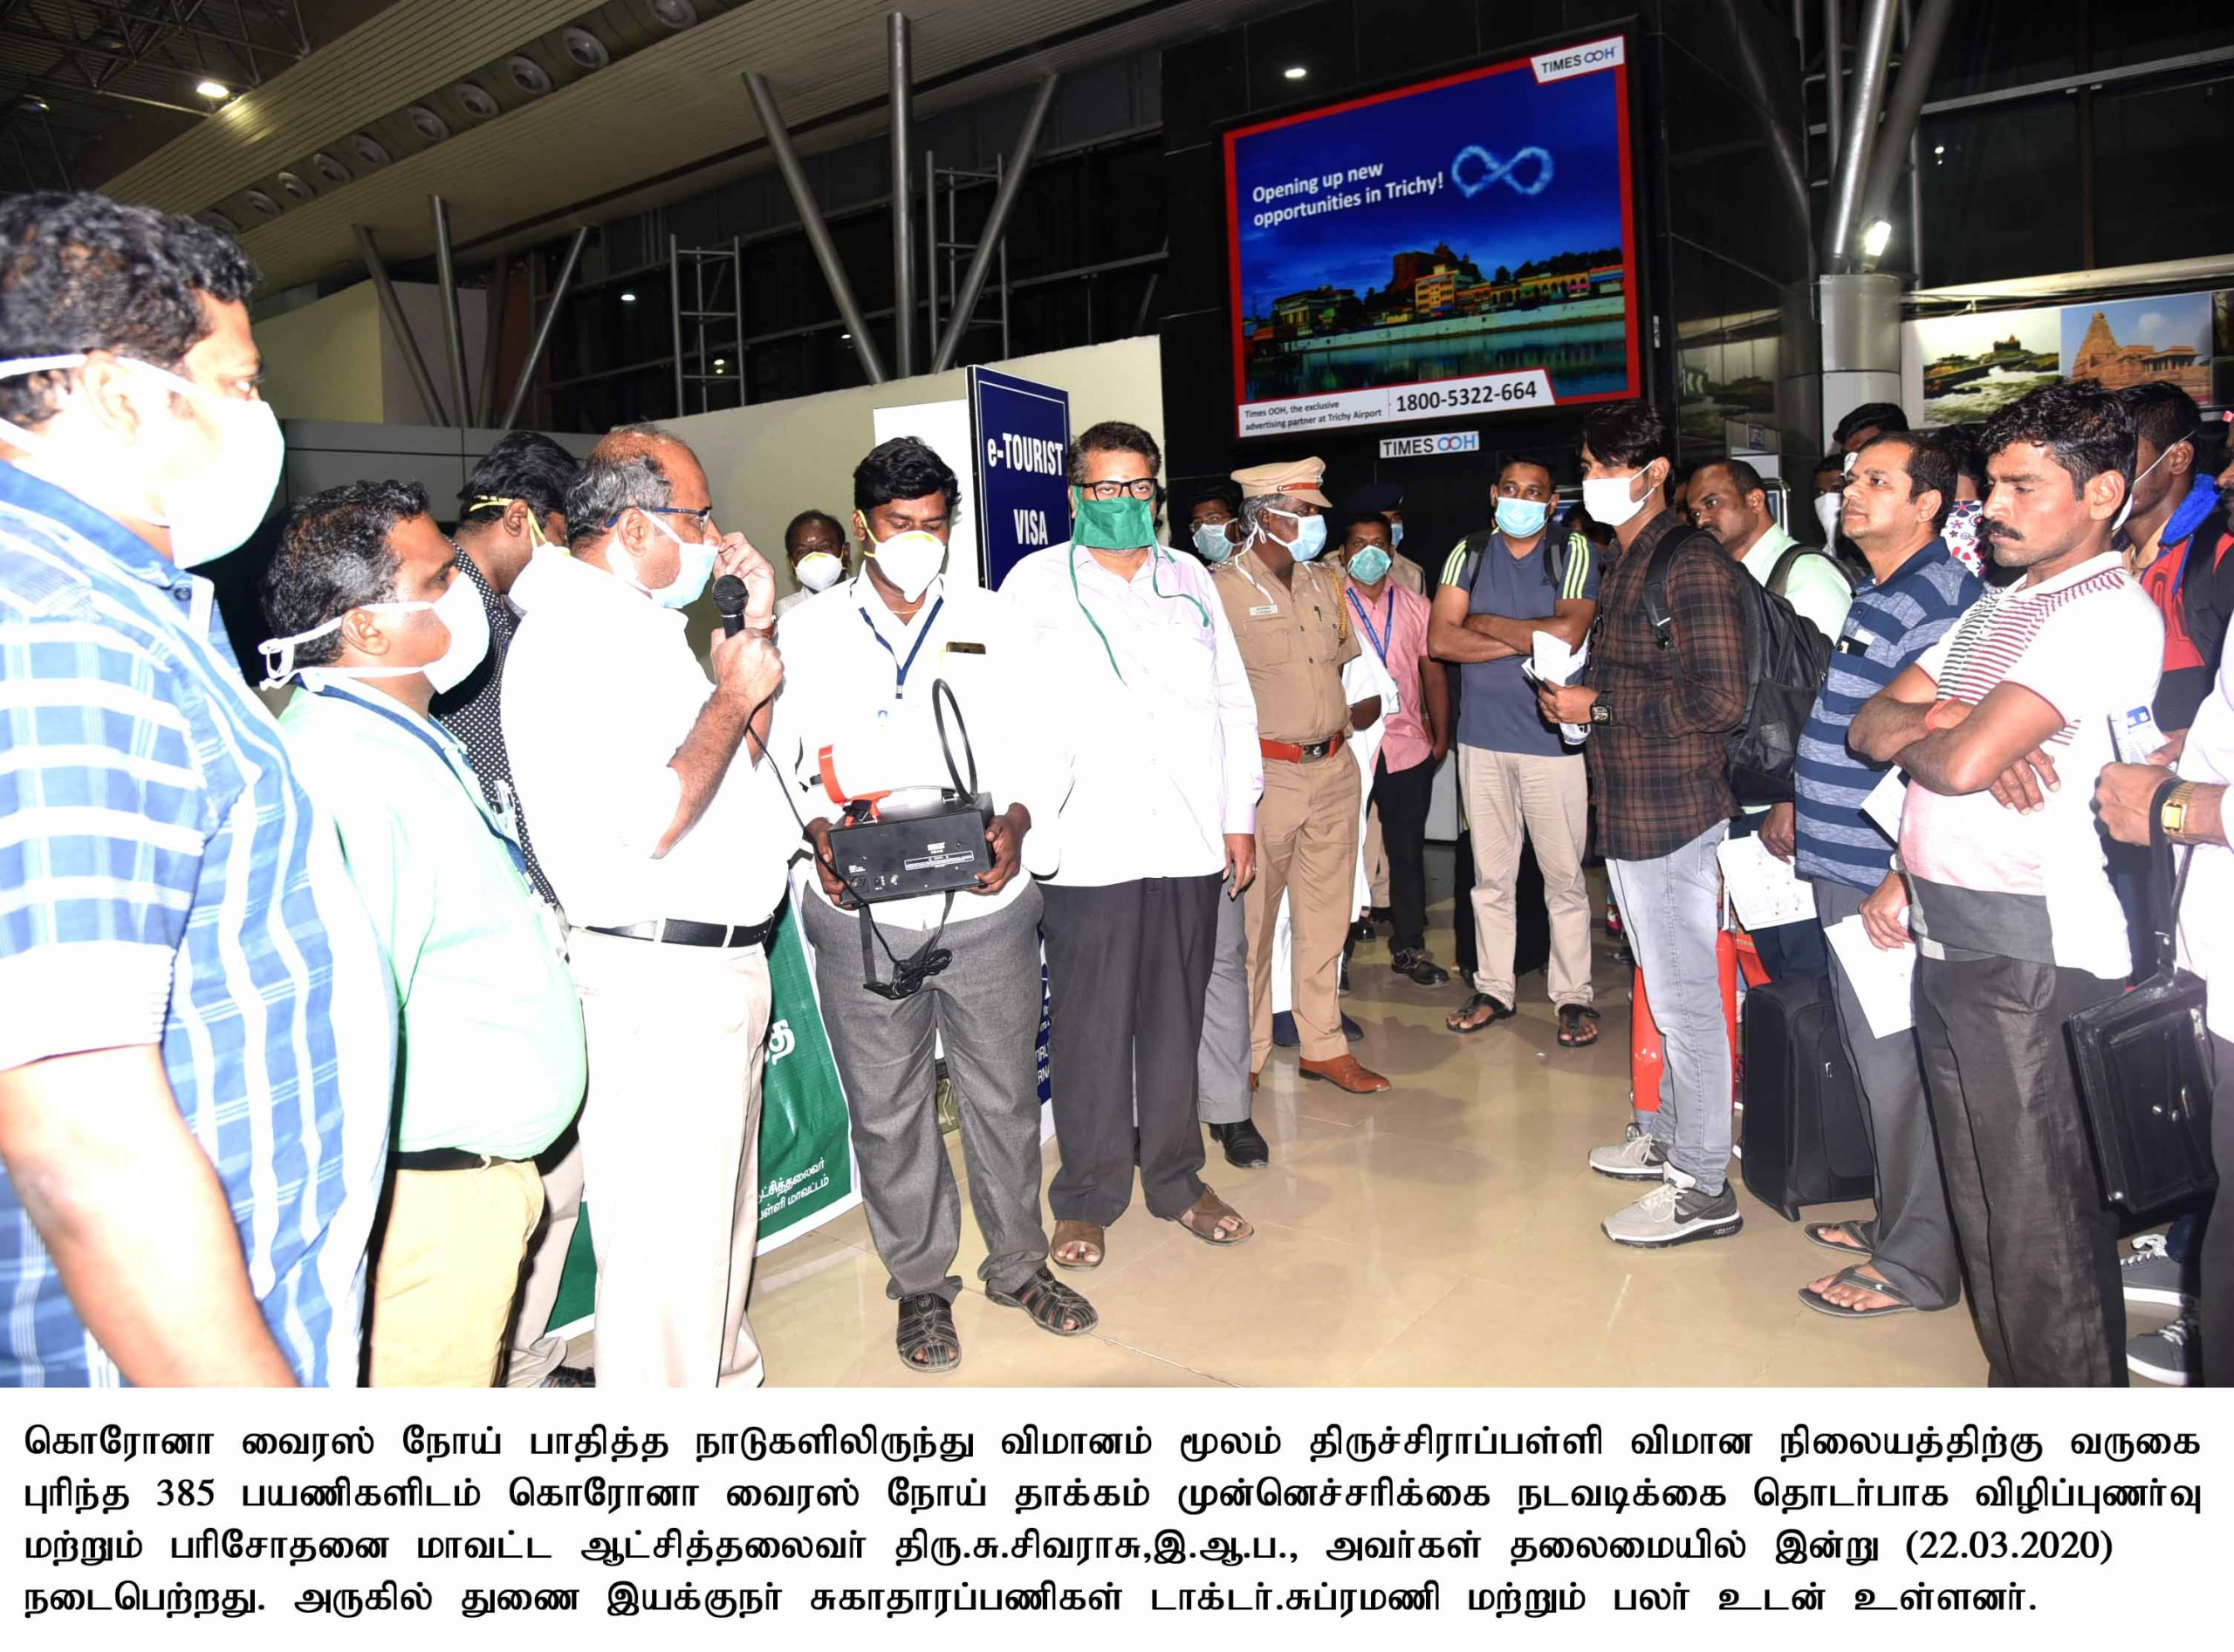 Corona Virus Prevention and Management : District Collector inspected Kallikudi Qurantine Centre , Central Bus Stand Railway Junction and Airport